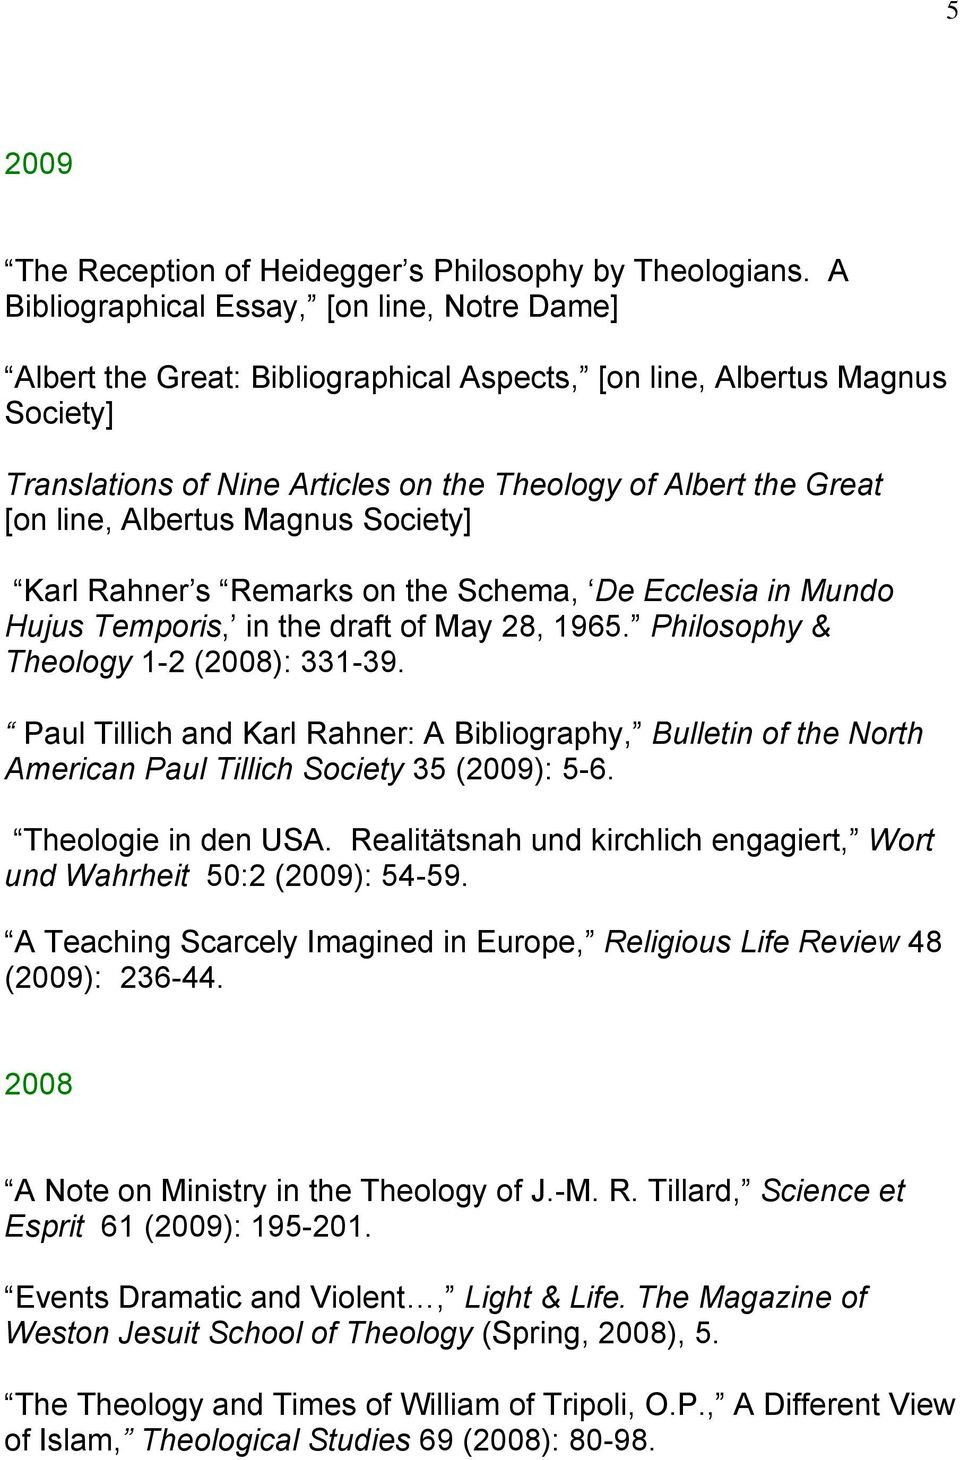 line, Albertus Magnus Society] Karl Rahner s Remarks on the Schema, De Ecclesia in Mundo Hujus Temporis, in the draft of May 28, 1965. Philosophy & Theology 1-2 (2008): 331-39.